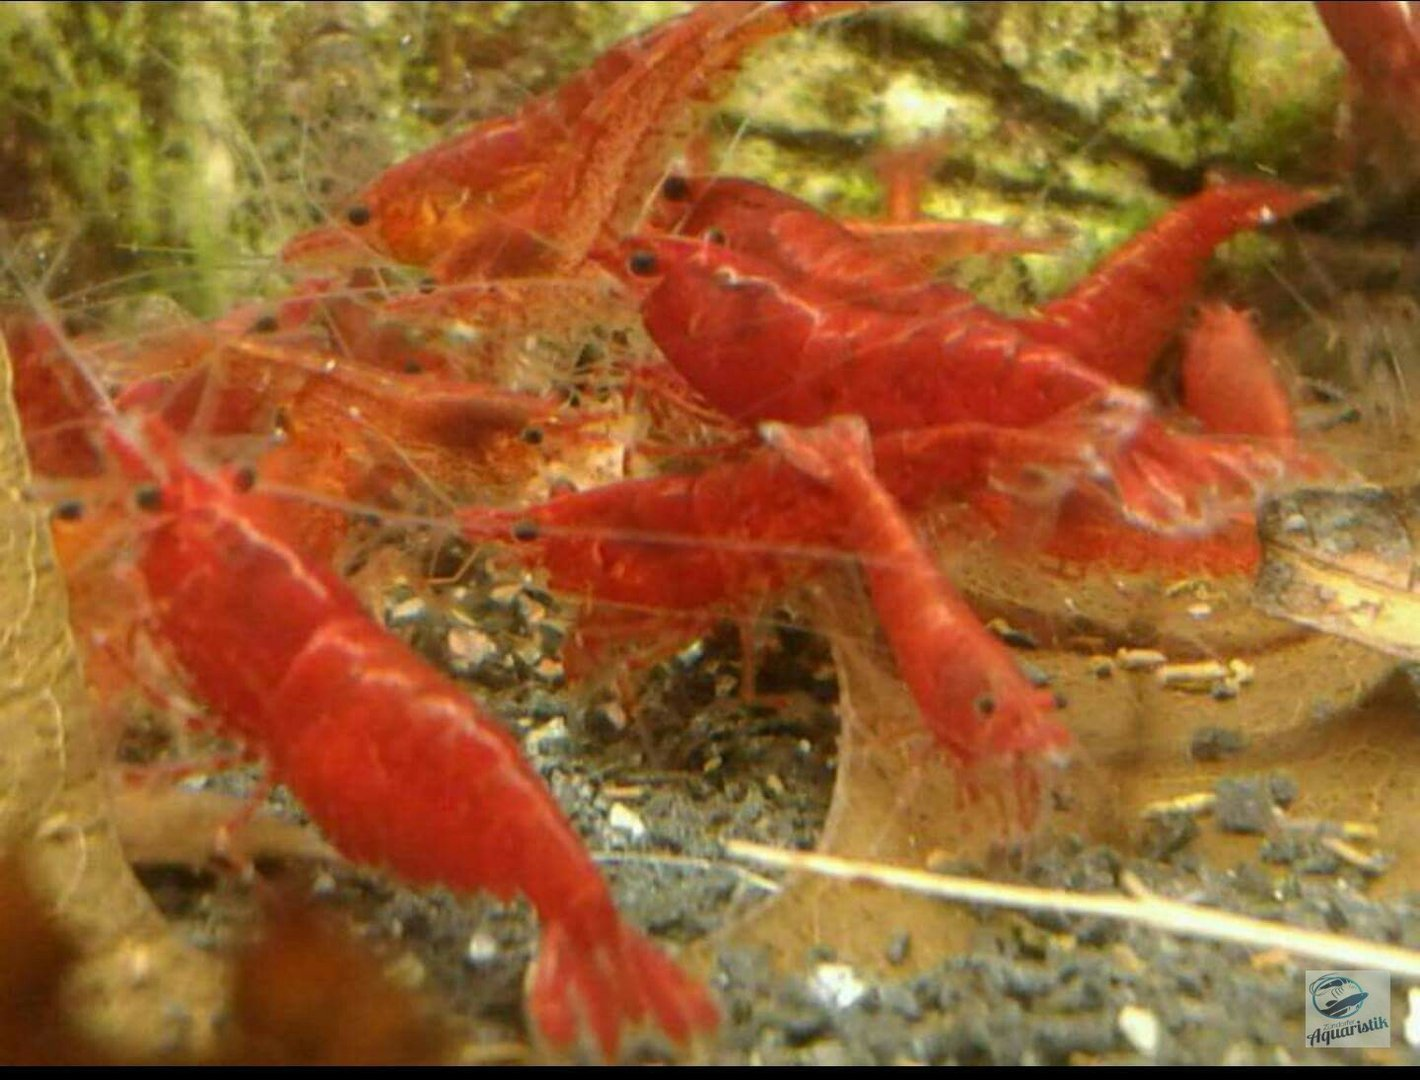 Bloody Mary - Neocaridina davidi var. bloody mary sakura